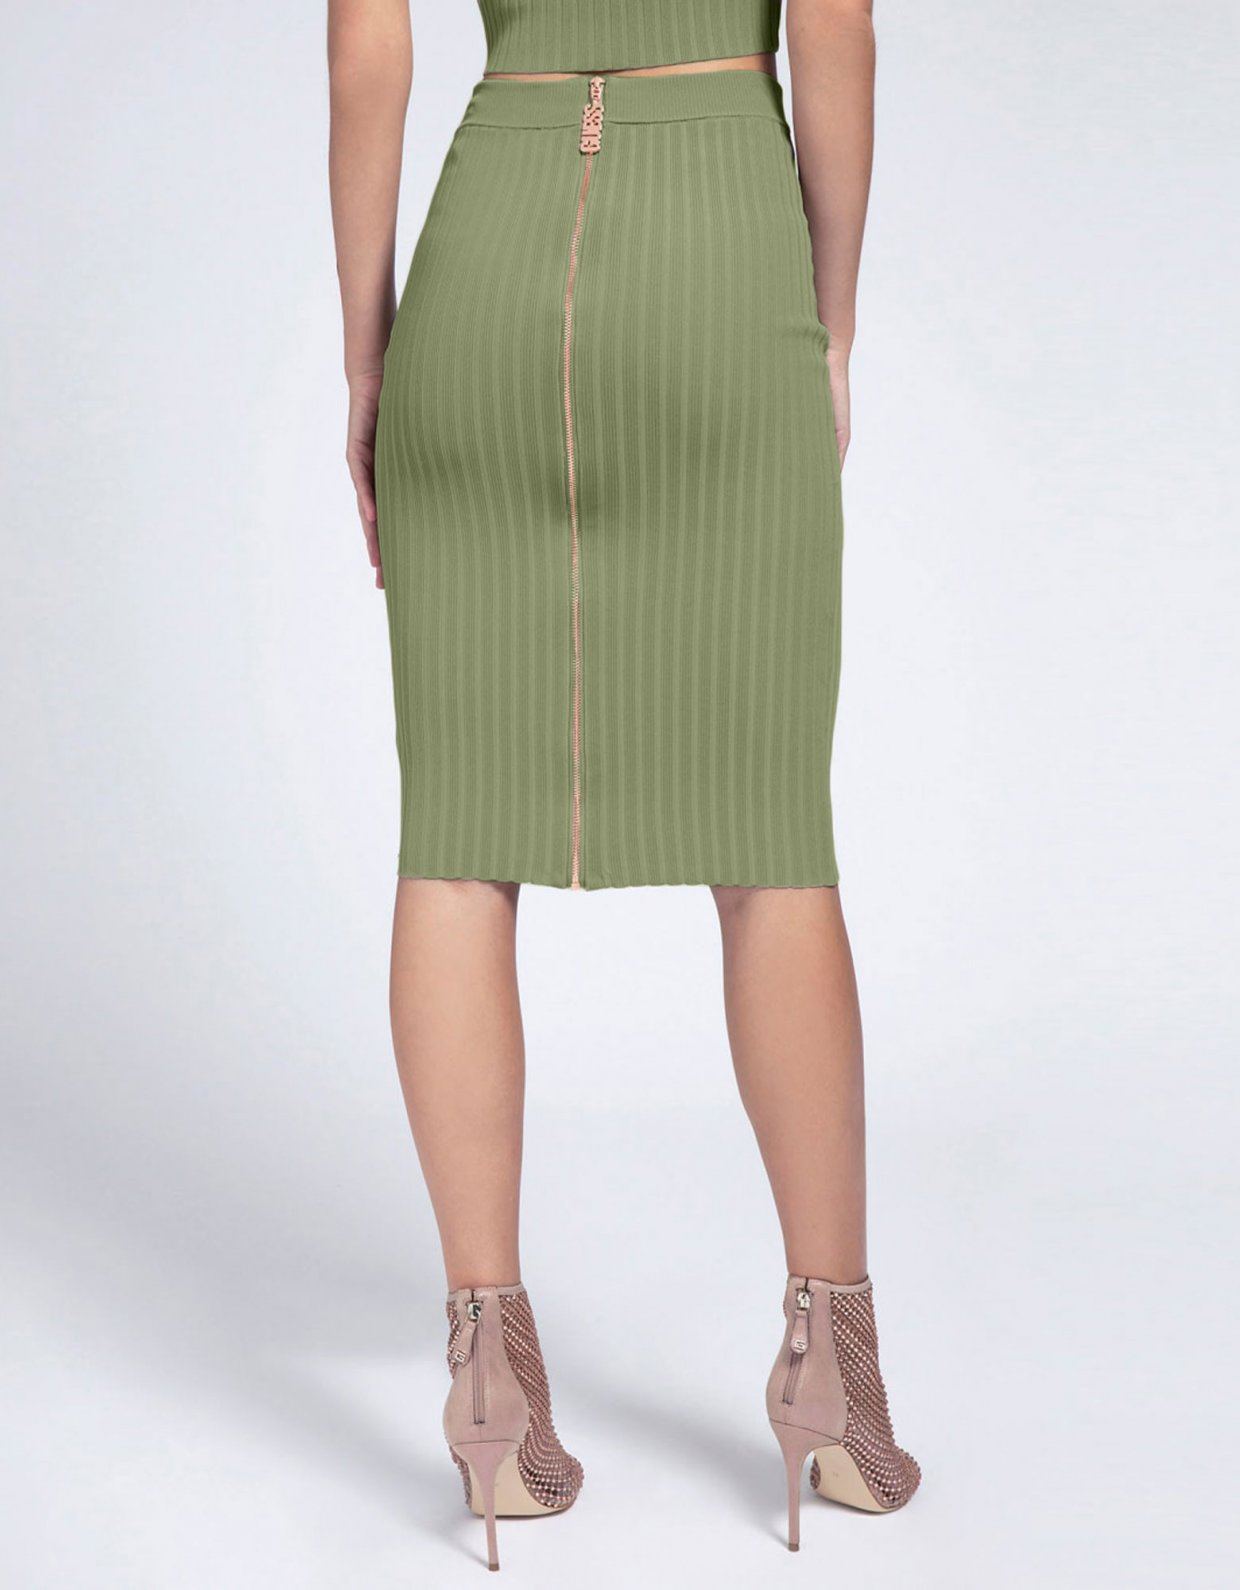 Guess Ada rib skirt green